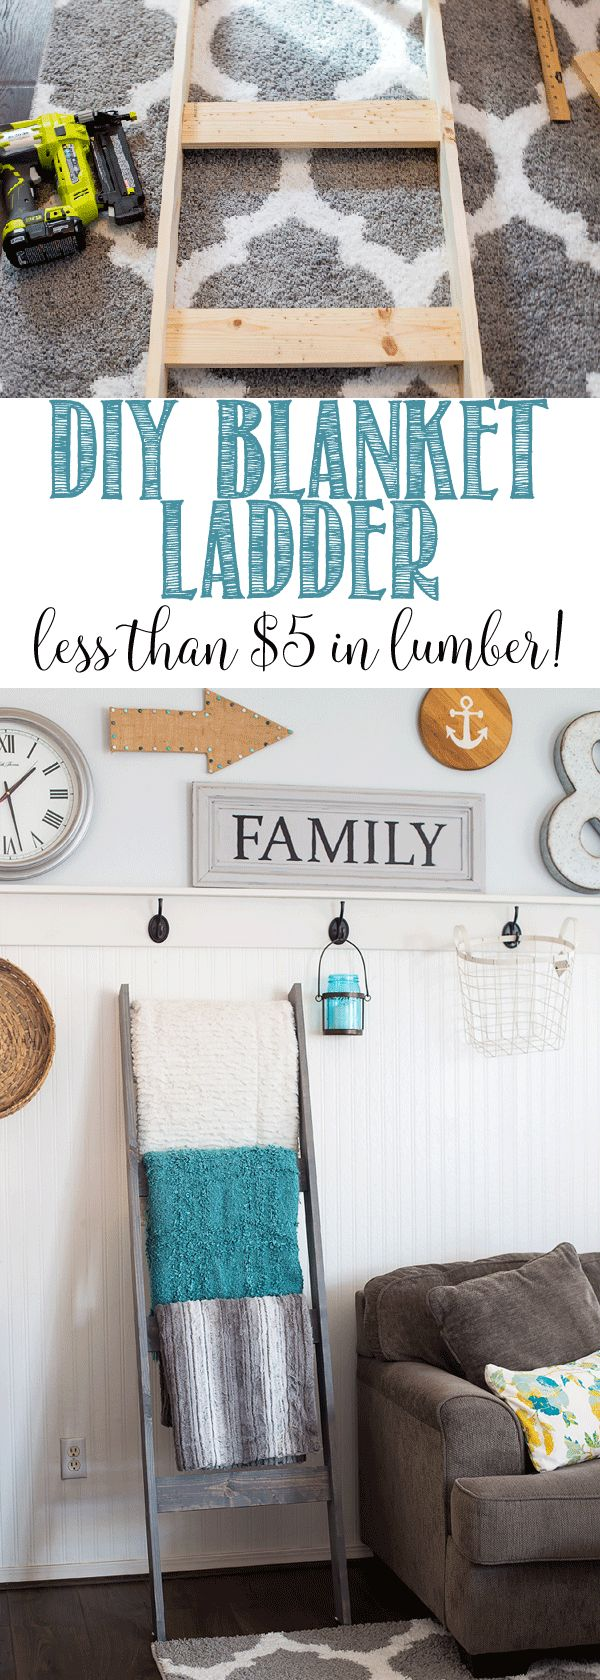 DIY Blanket Ladder for less than $5 in lumber!!!!  Great step by step tutorial so